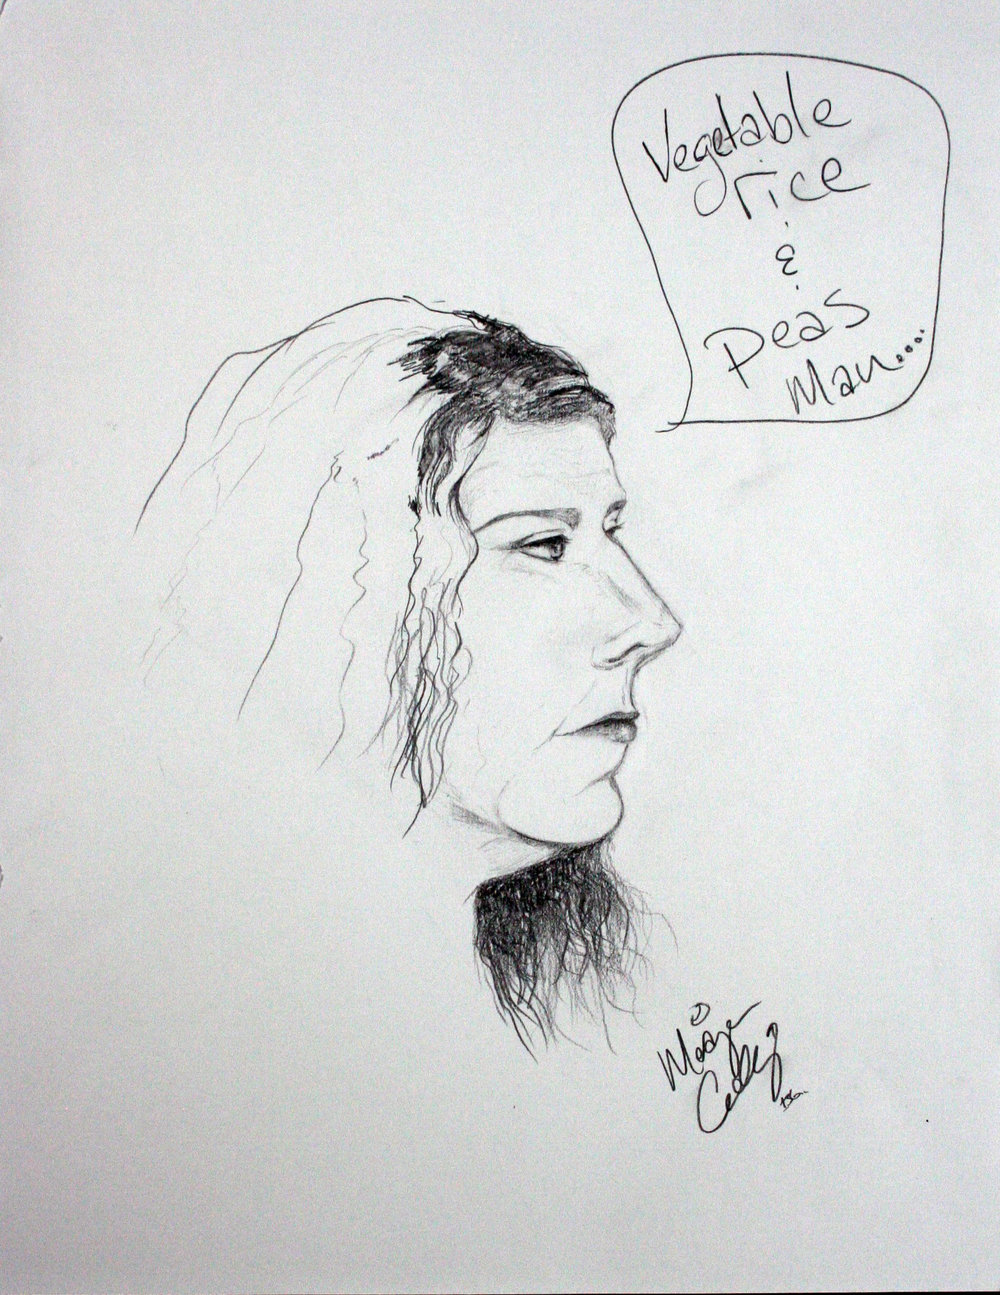 Meagen Cockley did this drawing.